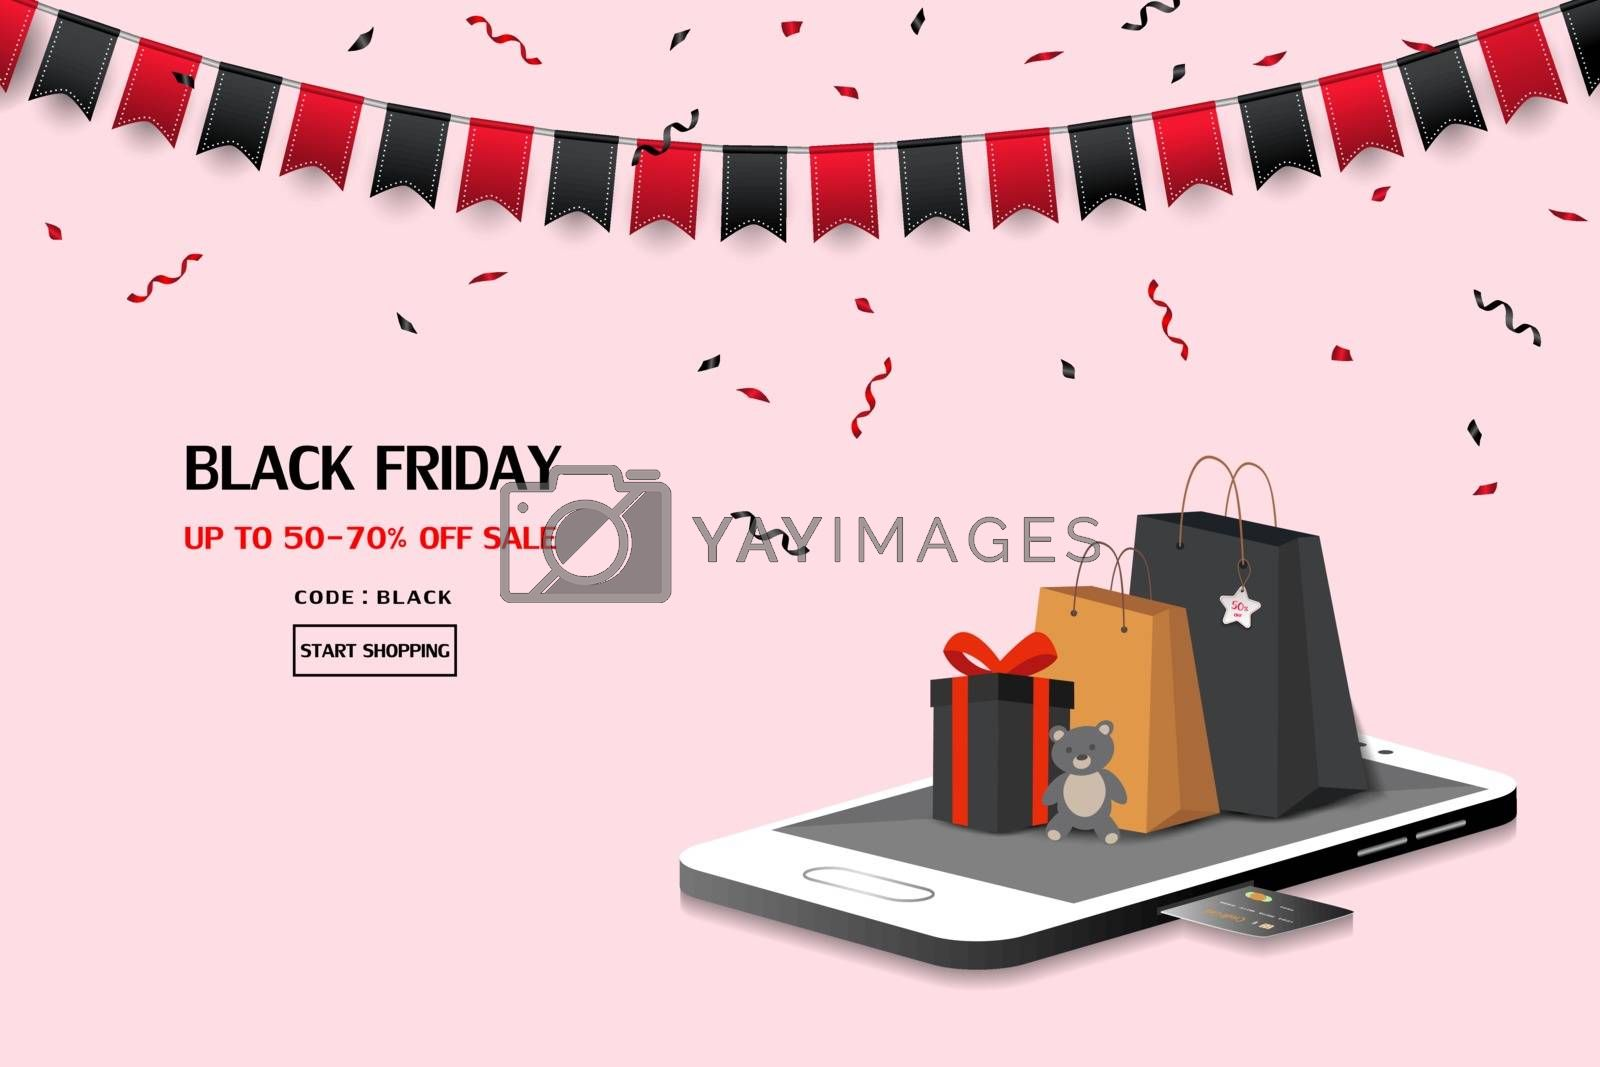 Black friday sale on mobile application or website,for advertising,shopping online,banner,poster or flyer by PIMPAKA